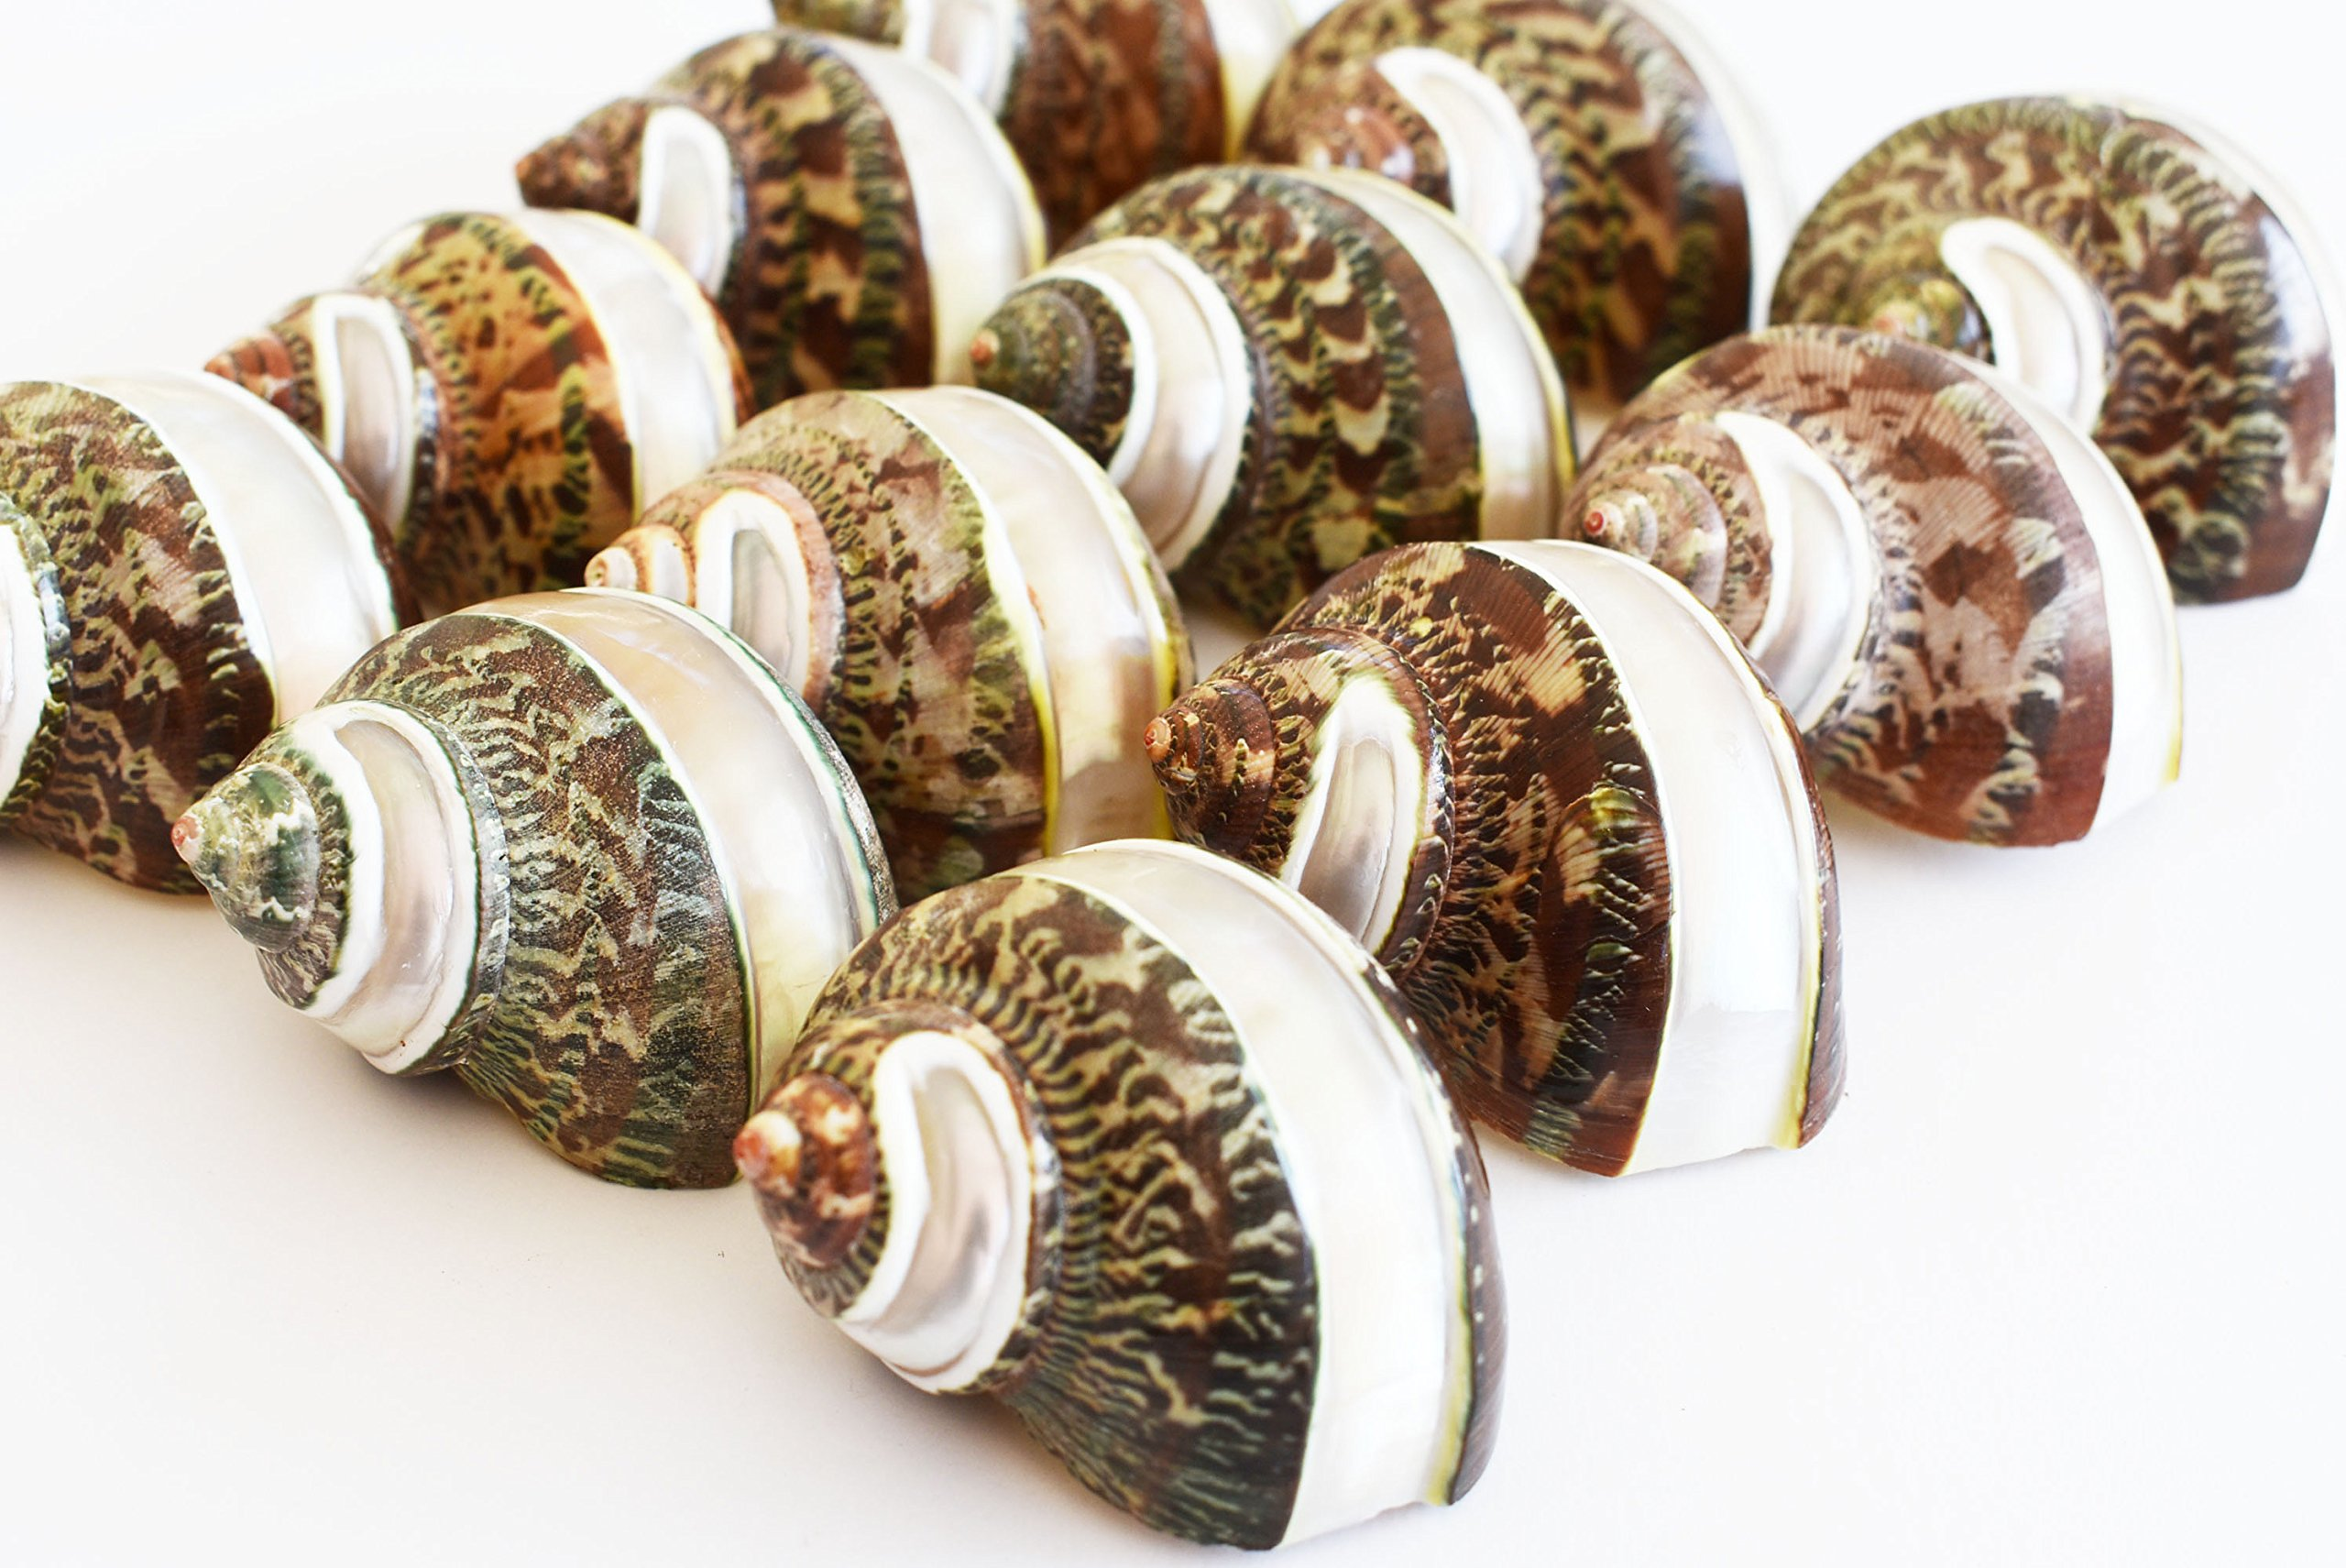 12 Large Banded Tapestry Turbo Shells (2'' - 2 1/2''/opening size about 1''- 1 1/4'') Polished Seashells Beach Craft Hermit Crabs Nautical Decor